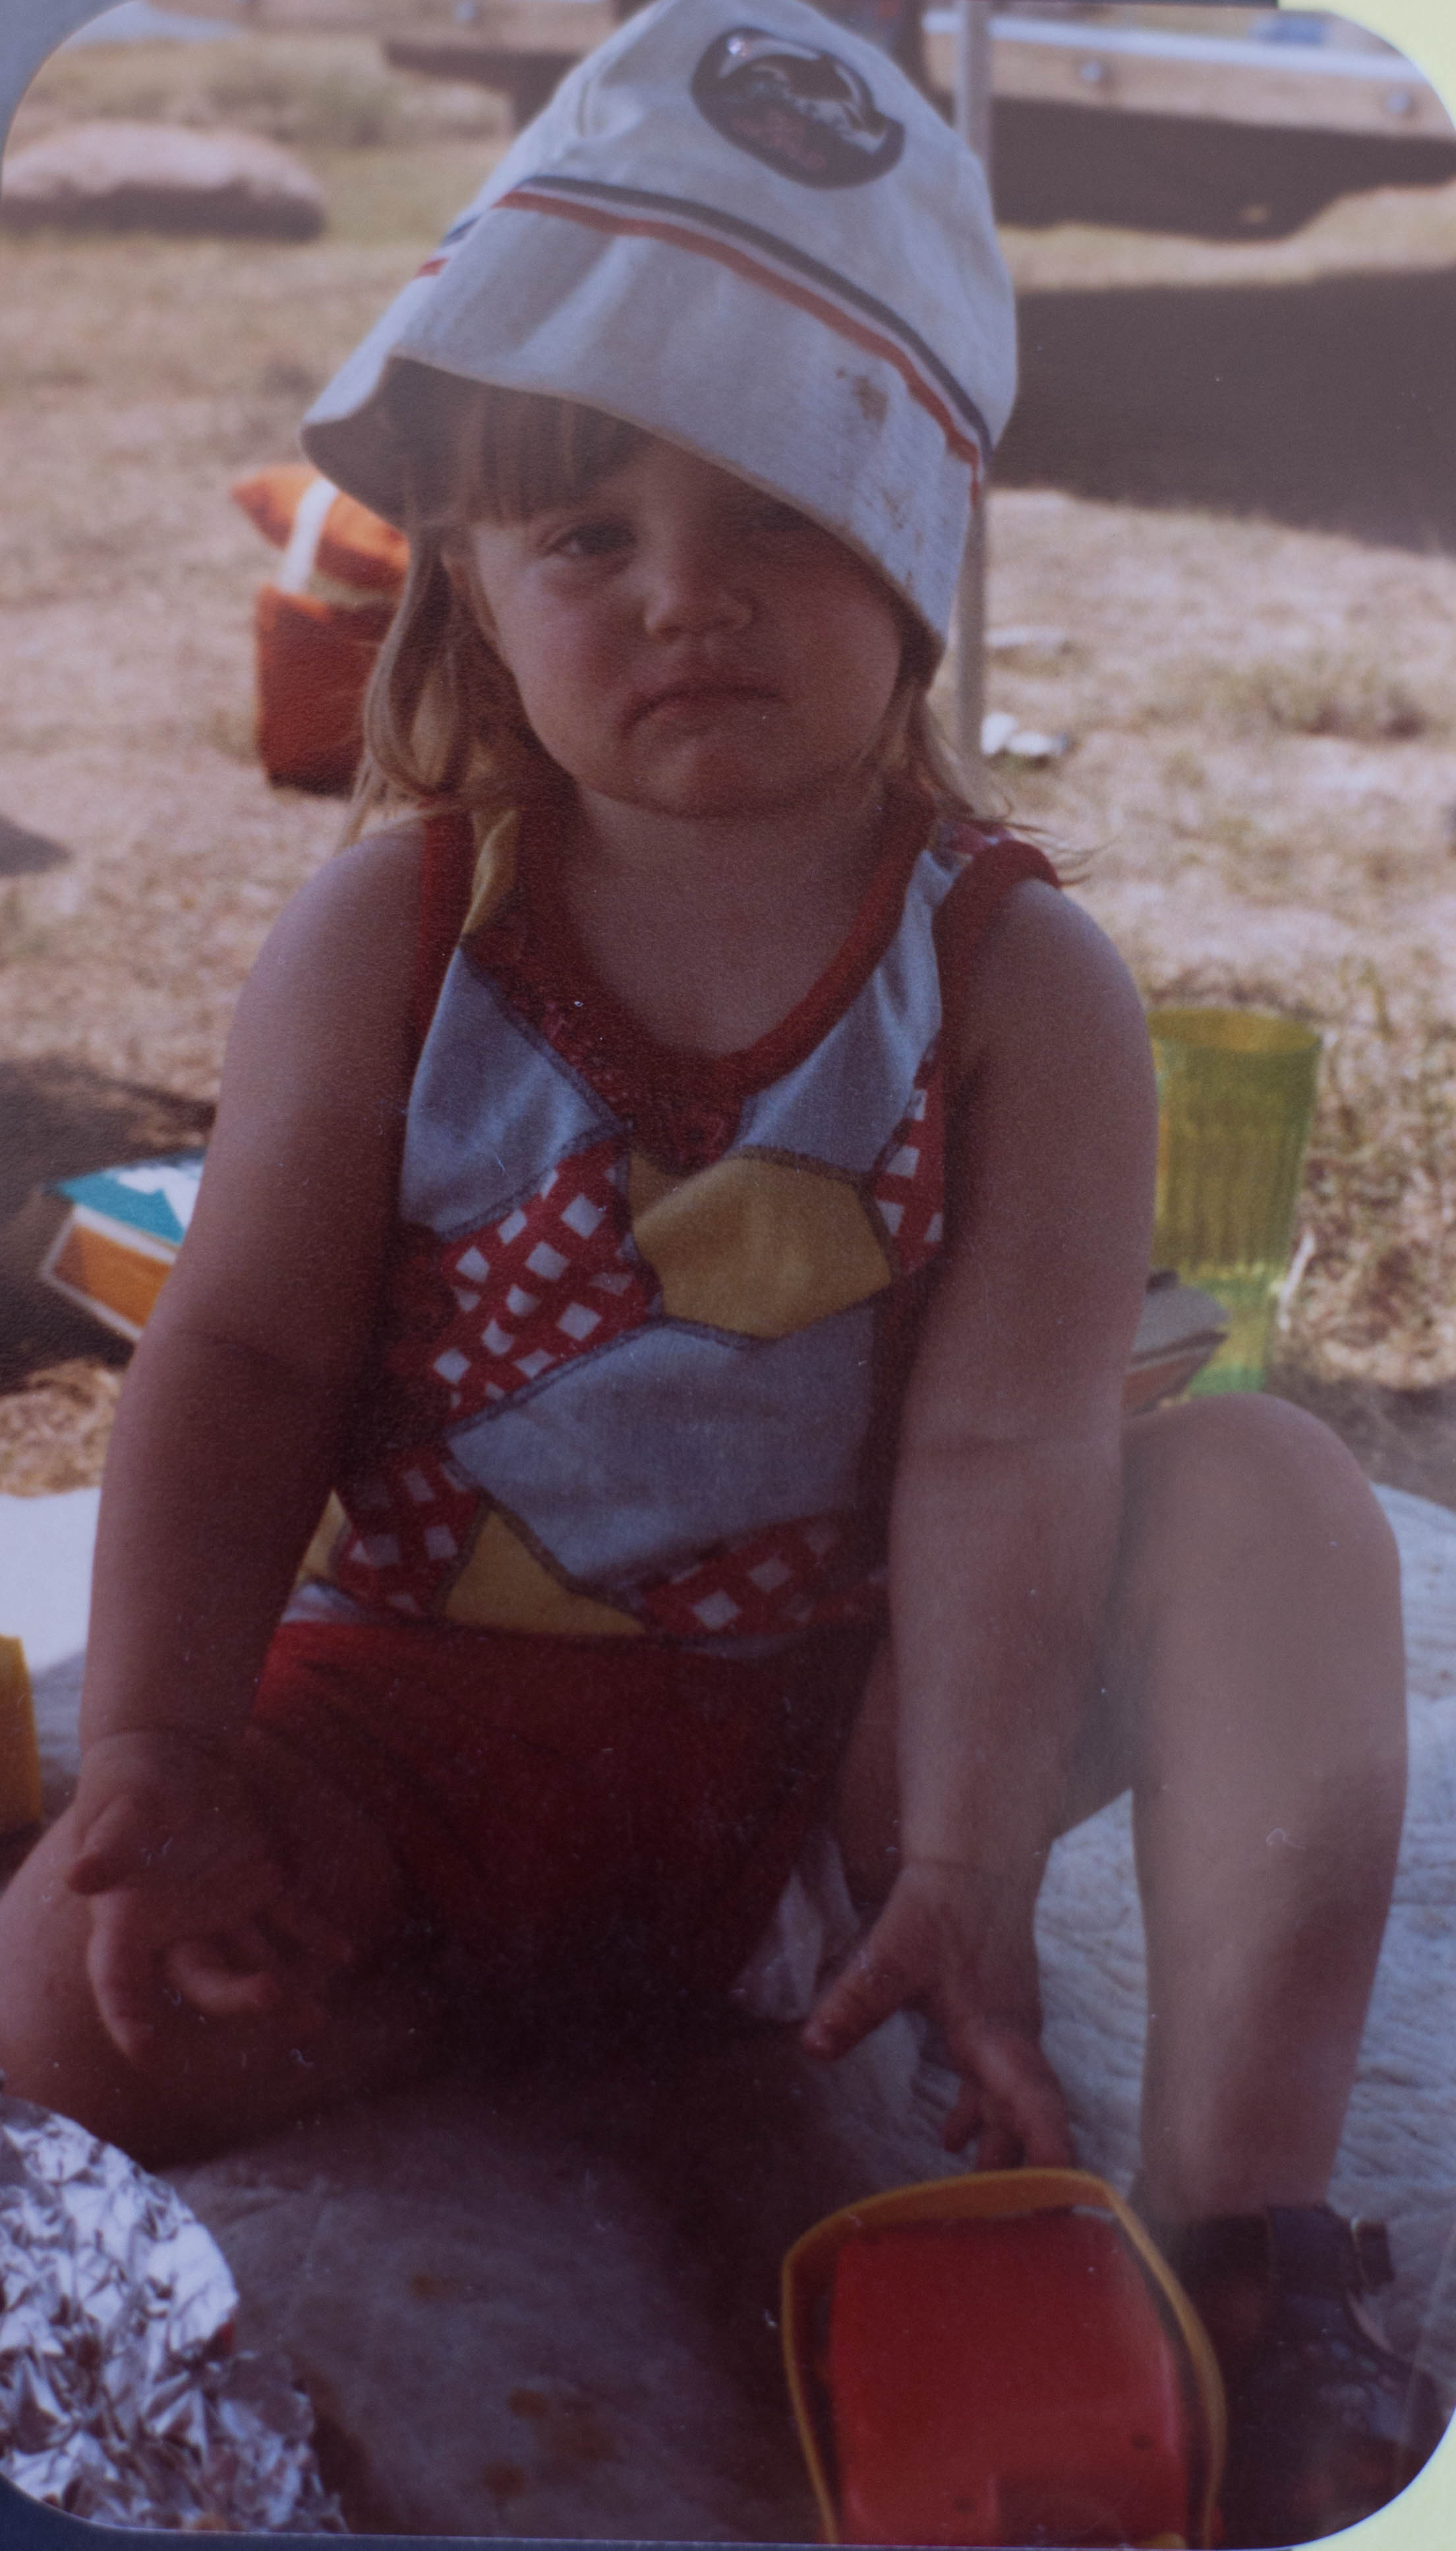 Little girl sitting on blanket for a picnic wearing a lopsided hat